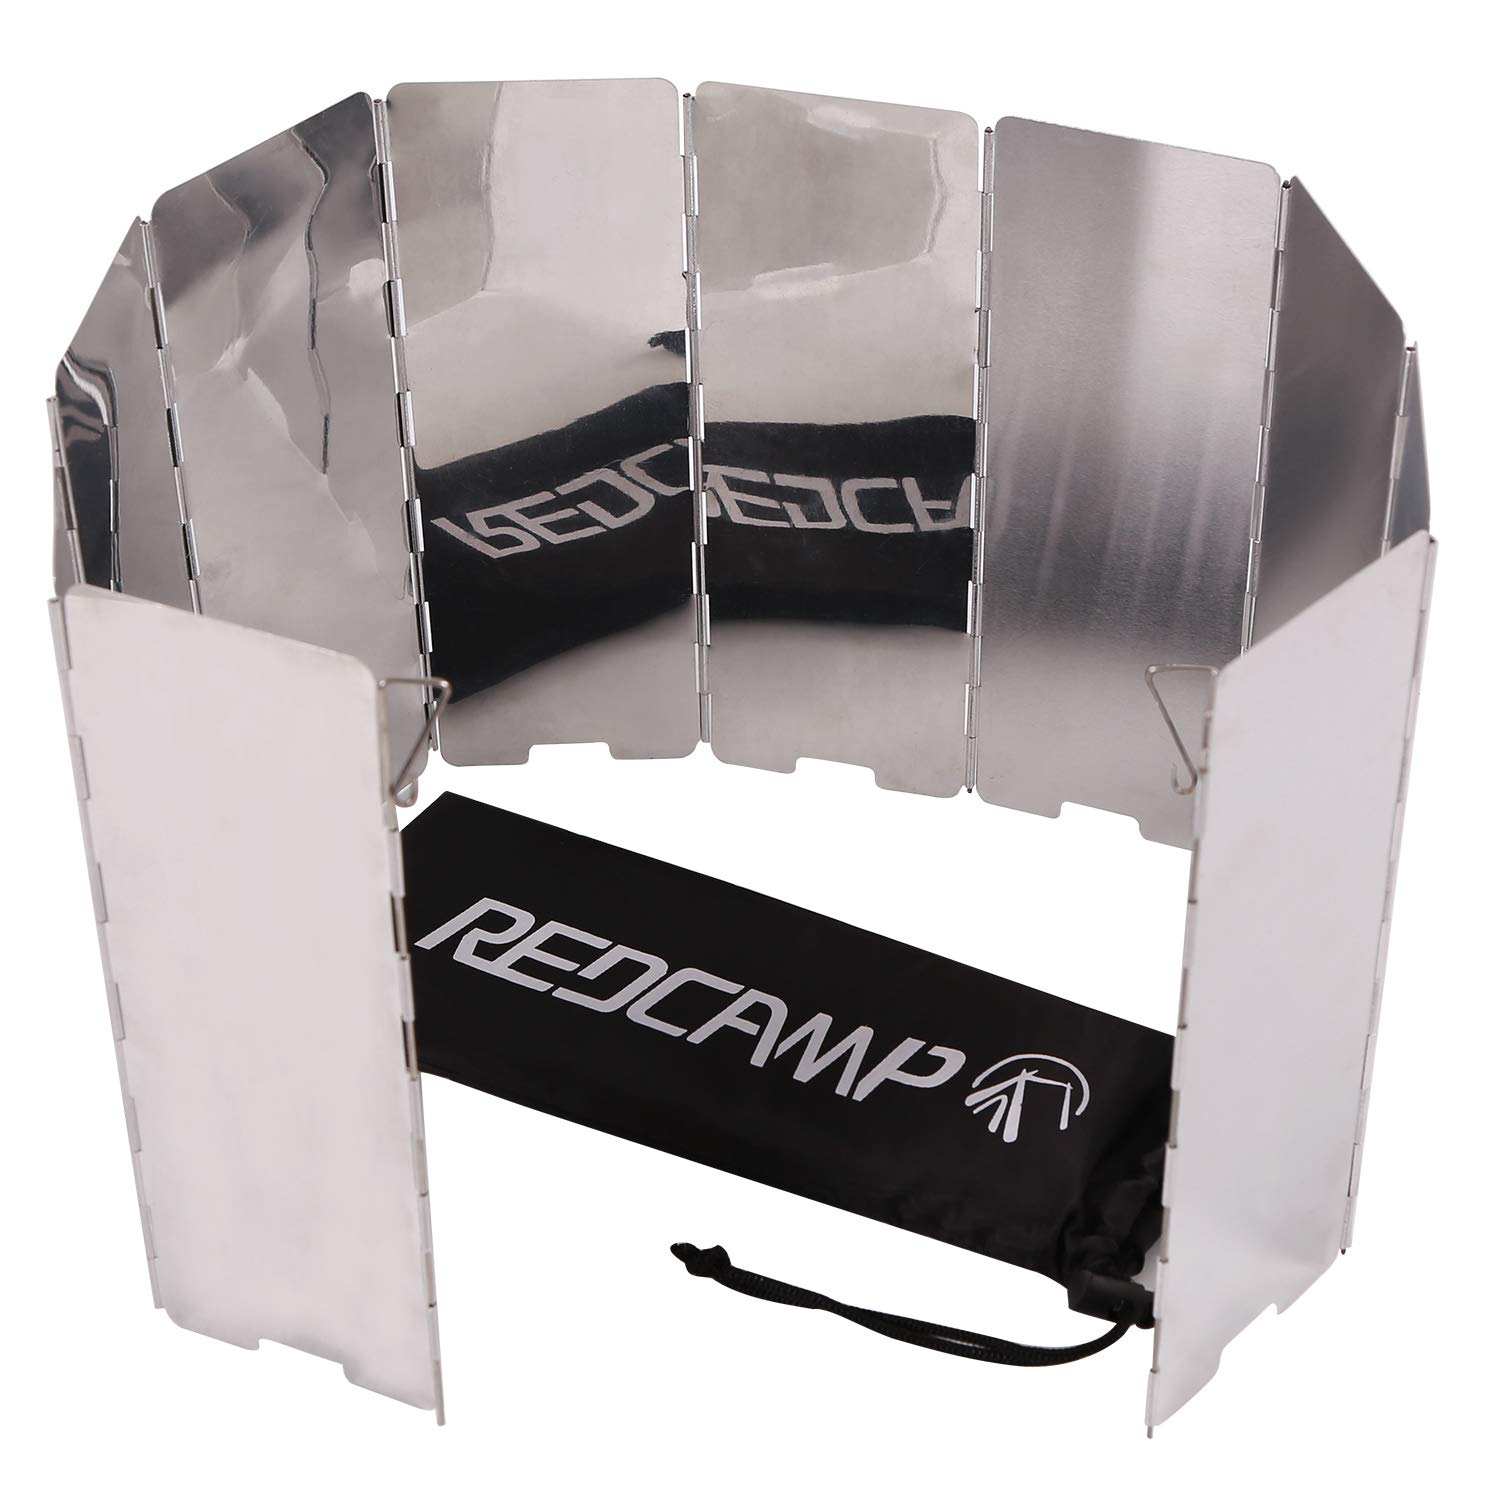 REDCAMP Folding Outdoor Stove Windscreen, 10 Plates Aluminum Camping Stove Windshield with Carrying Bag, Lightweight Butane Burner Windshield by REDCAMP